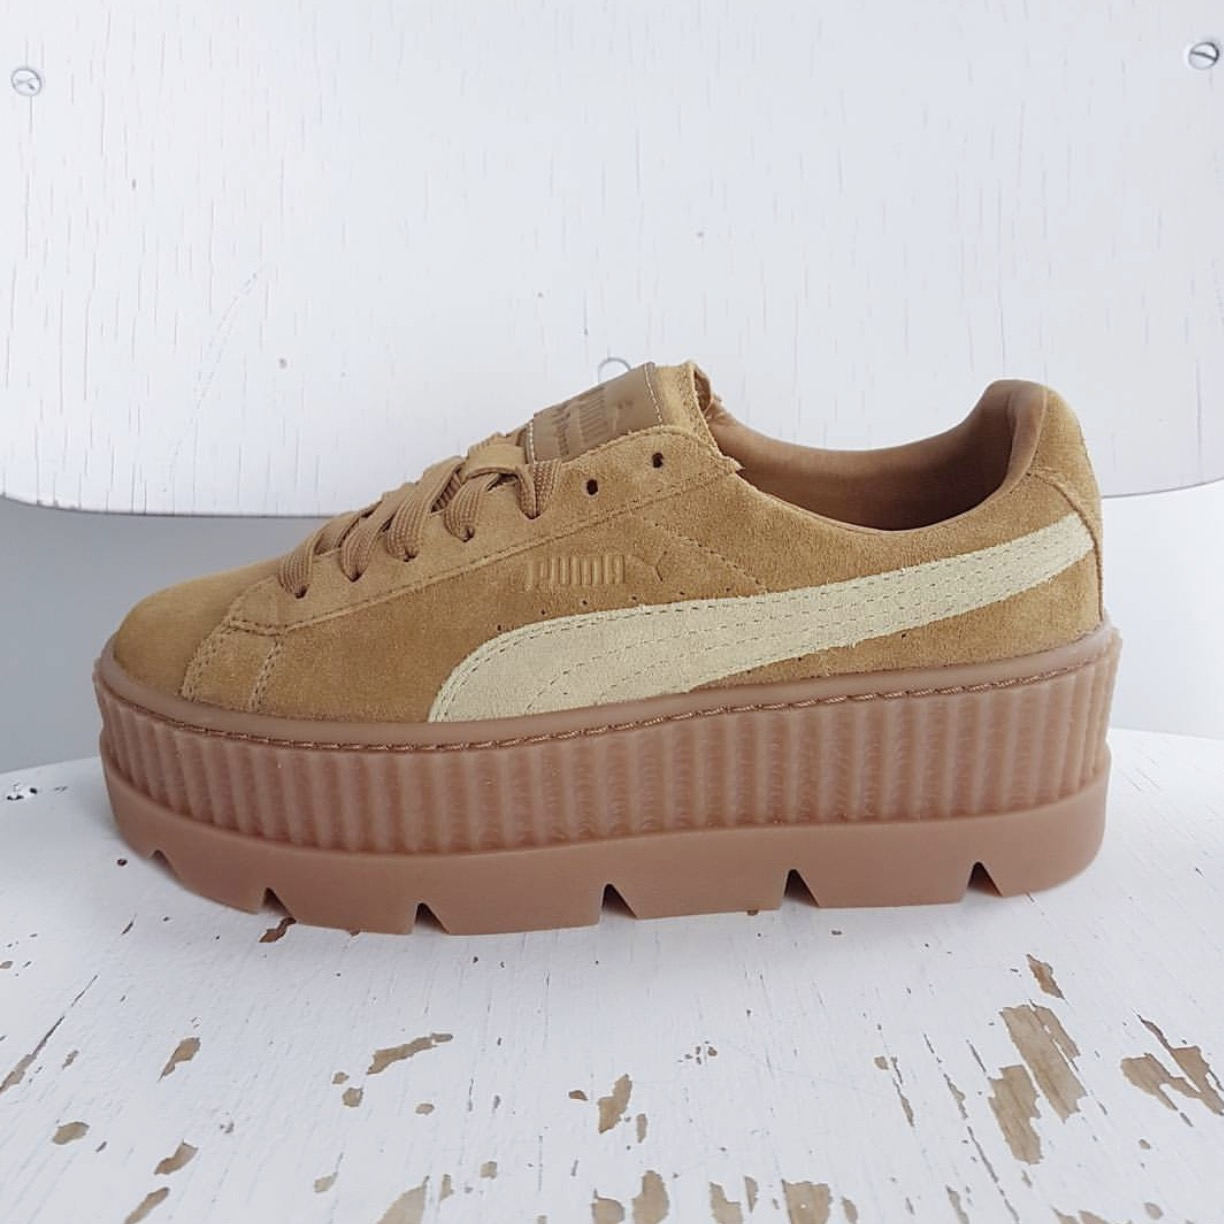 8bcbeb045b4e Puma Creeper rihanna new Puma Rihanna women s shoes ultra-thick platform  shoes